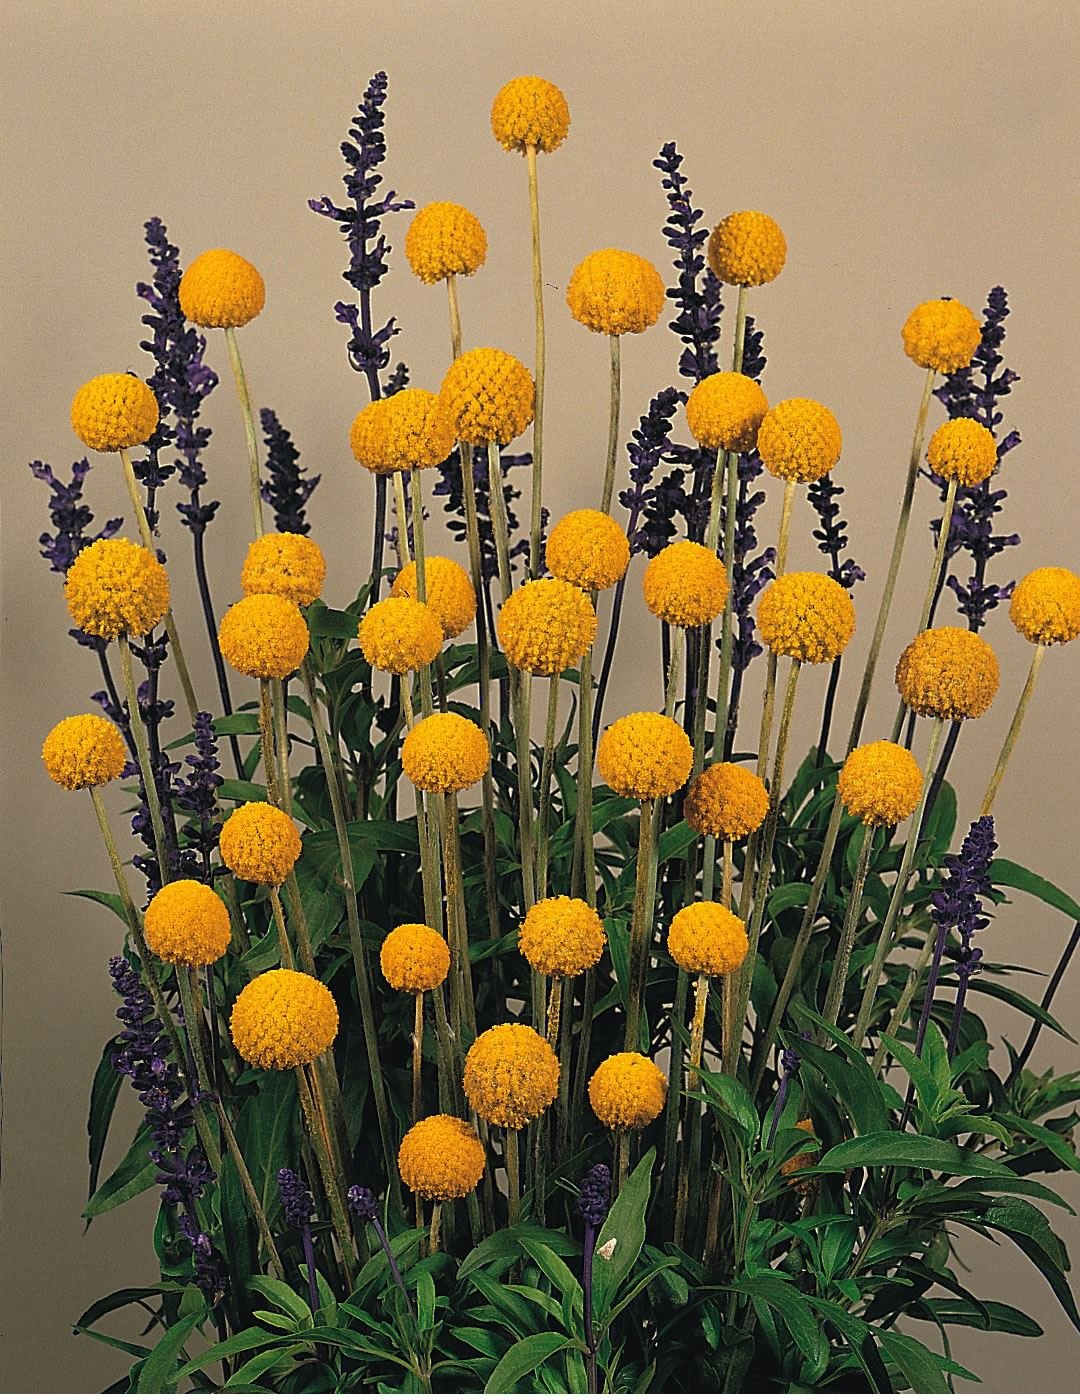 Just seed flower craspedia globosa drumstick 100 seeds just seed flower craspedia globosa drumstick 100 seeds amazon garden outdoors mightylinksfo